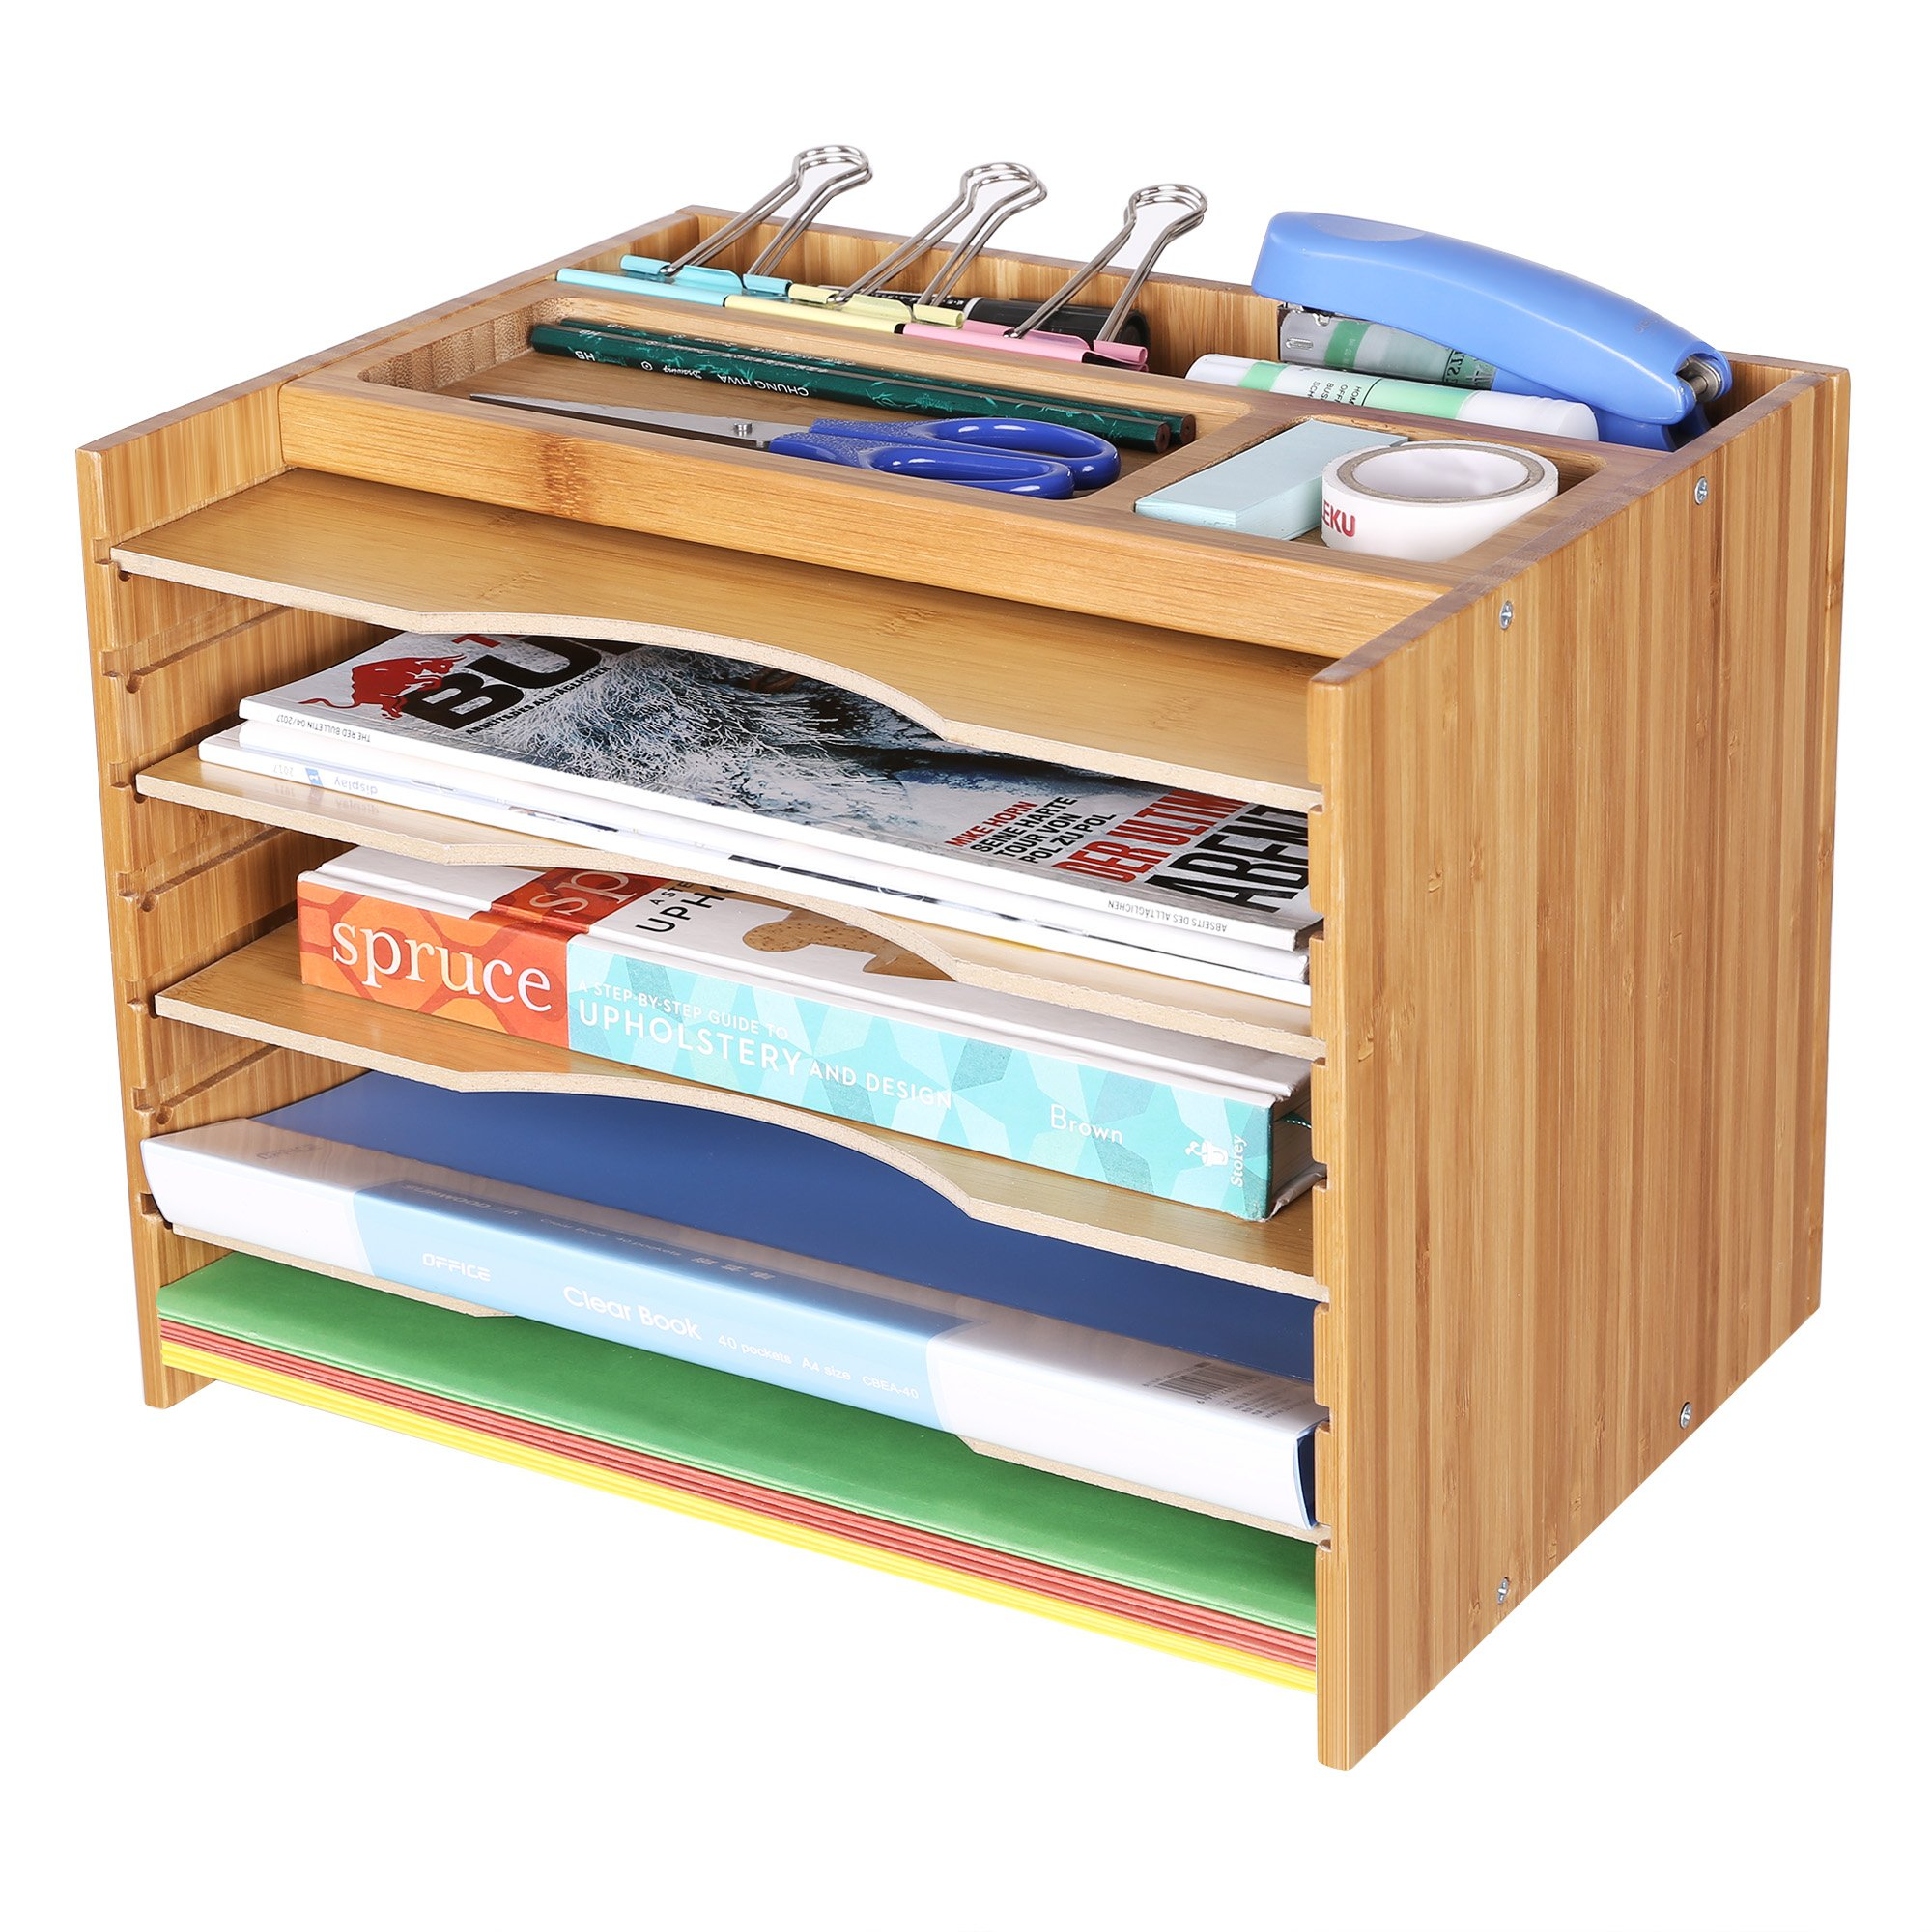 SONGMICS Bamboo File Organizer Paper Sorter with 5 Adjustable Shelves Top Storage Compartments Natural UOFS44Y by SONGMICS